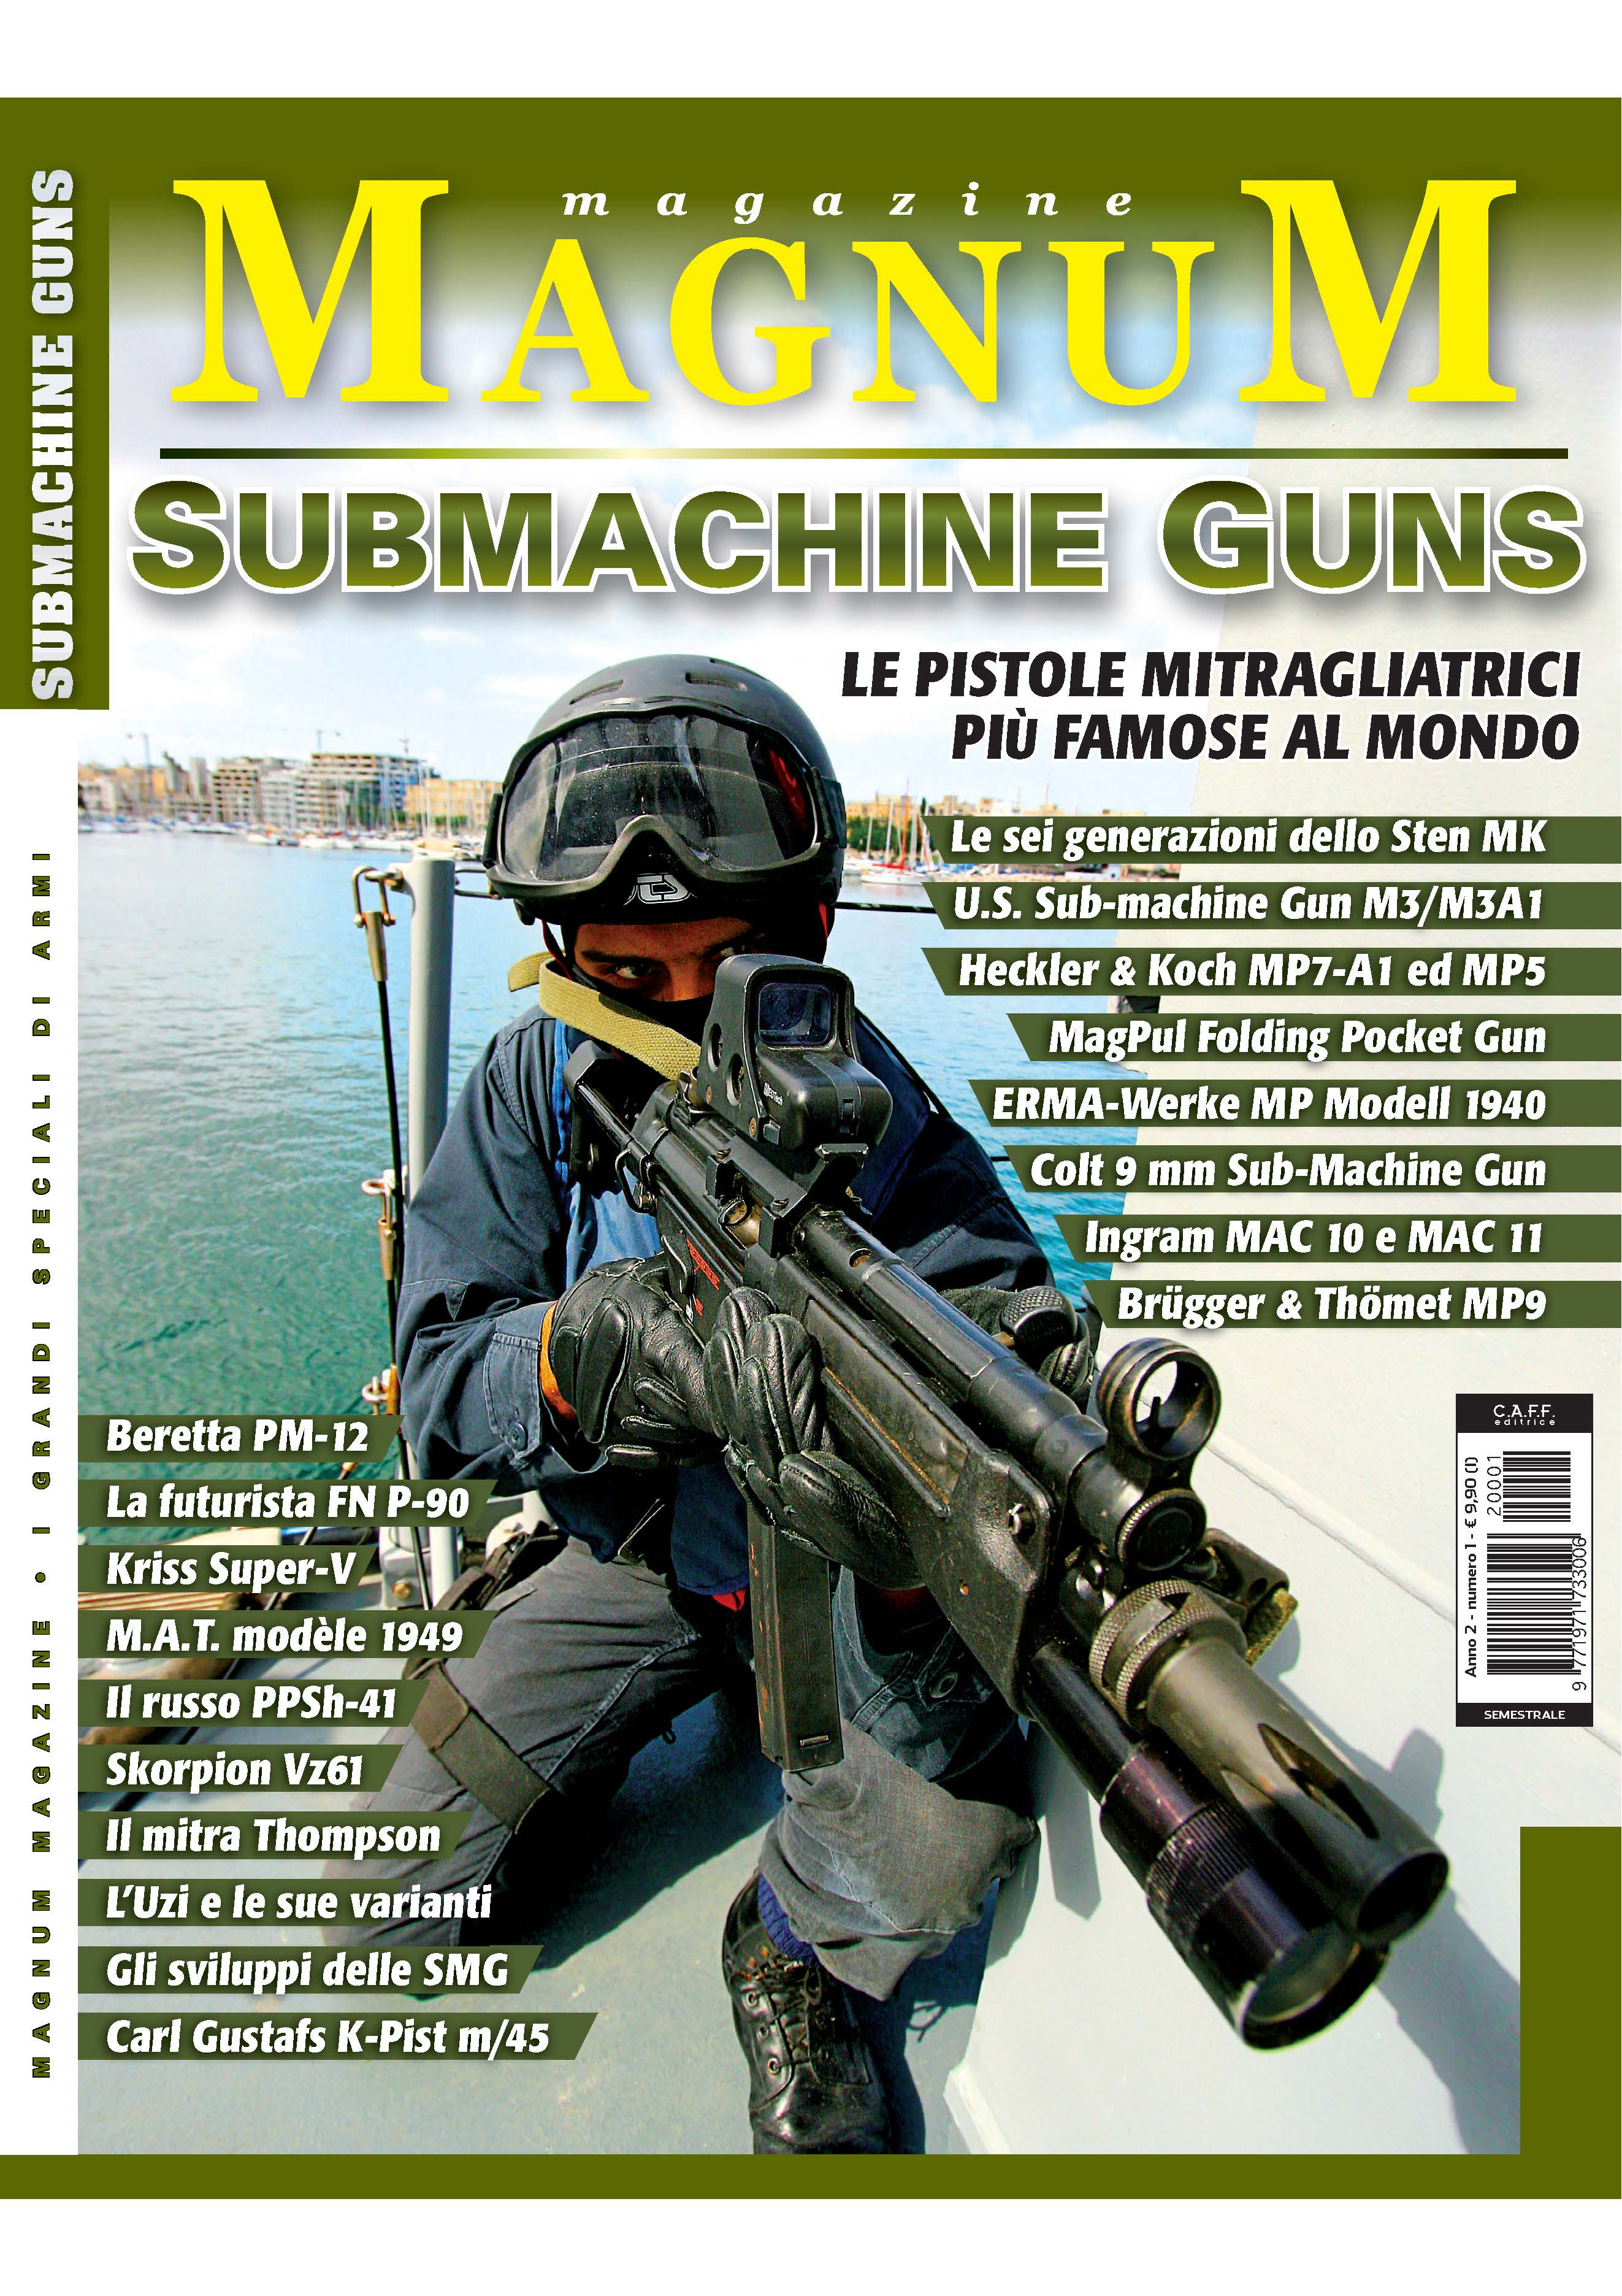 Speciale: Submachine Guns